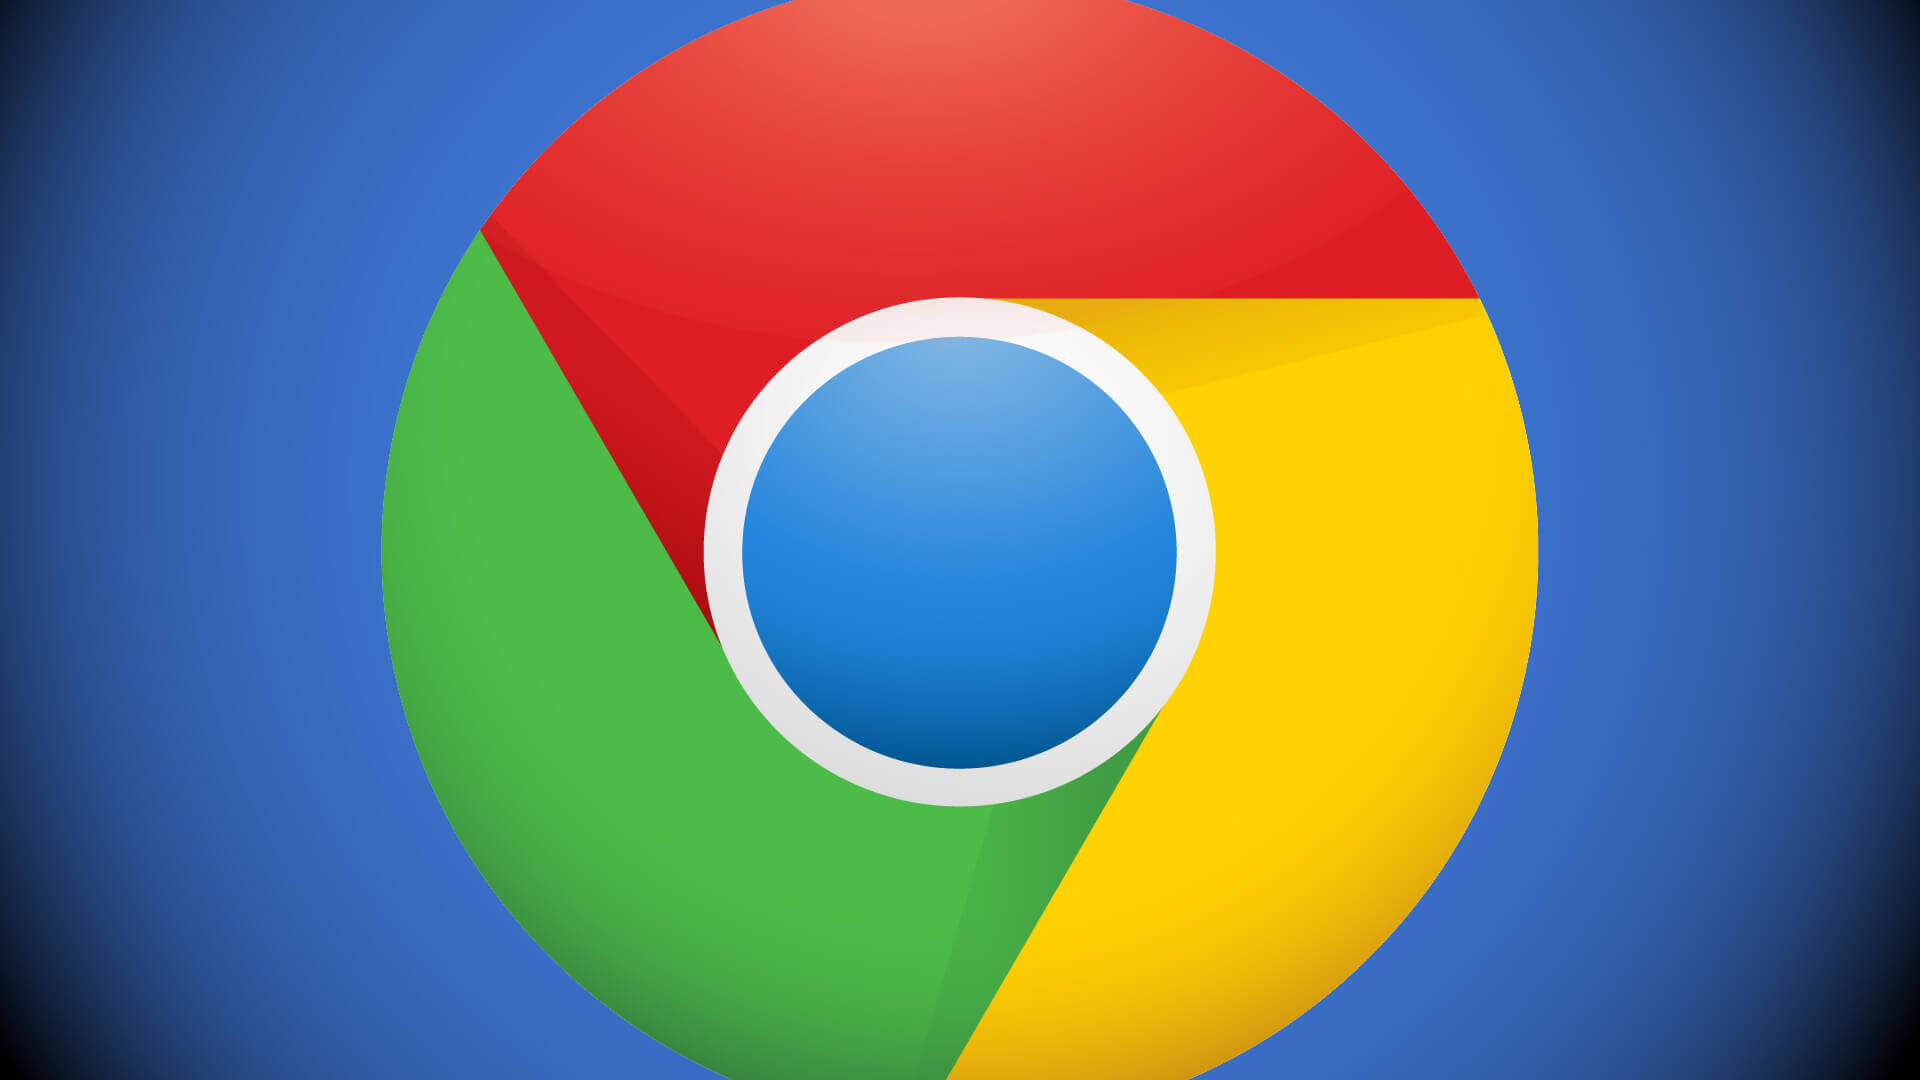 Alibaba's UC browser beating Google Chrome in Indian mobile market